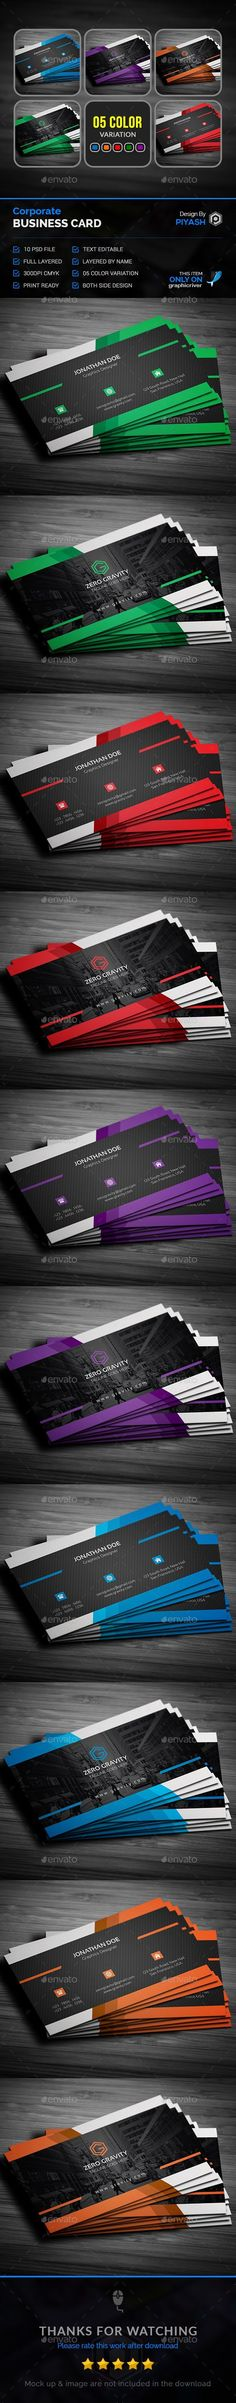 Business Card — Photoshop PSD #pack #web • Available here → https://graphicriver.net/item/business-card/15490727?ref=pxcr